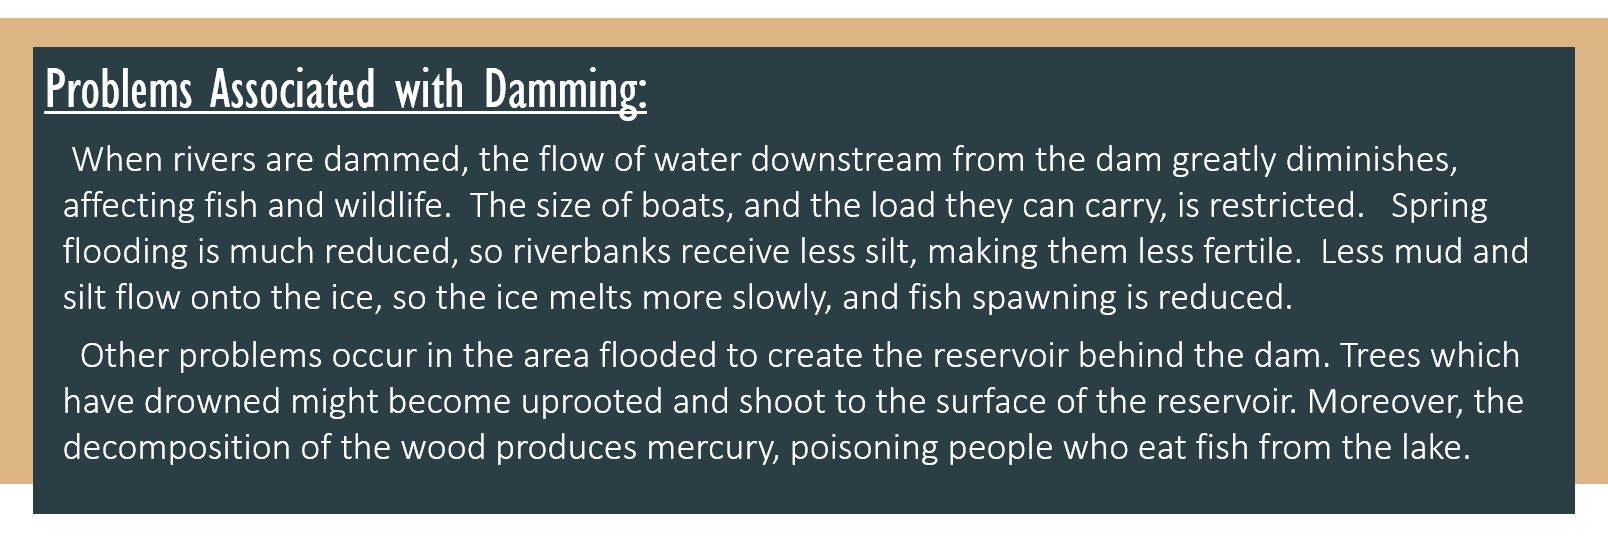 Problems Associated with Damming: When rivers are dammed, the flow of water downstream from the dam greatly diminishes, affecting fish and wildlife. The size of boats, and the load they can carry, is restricted.  Spring flooding is much reduced, so riverbanks receive less silt, making them less fertile. Less mud and silt flow onto the ice, so the ice melts more slowly, and fish spawning is reduced. Other problems occur in the area flooded to create the reservoir behind the dam.Trees which have drowned might become uprooted and shoot to the surface of the reservoir. Moreover, the decomposition of the wood produces mercury, poisoning people who eat fish from the lake.